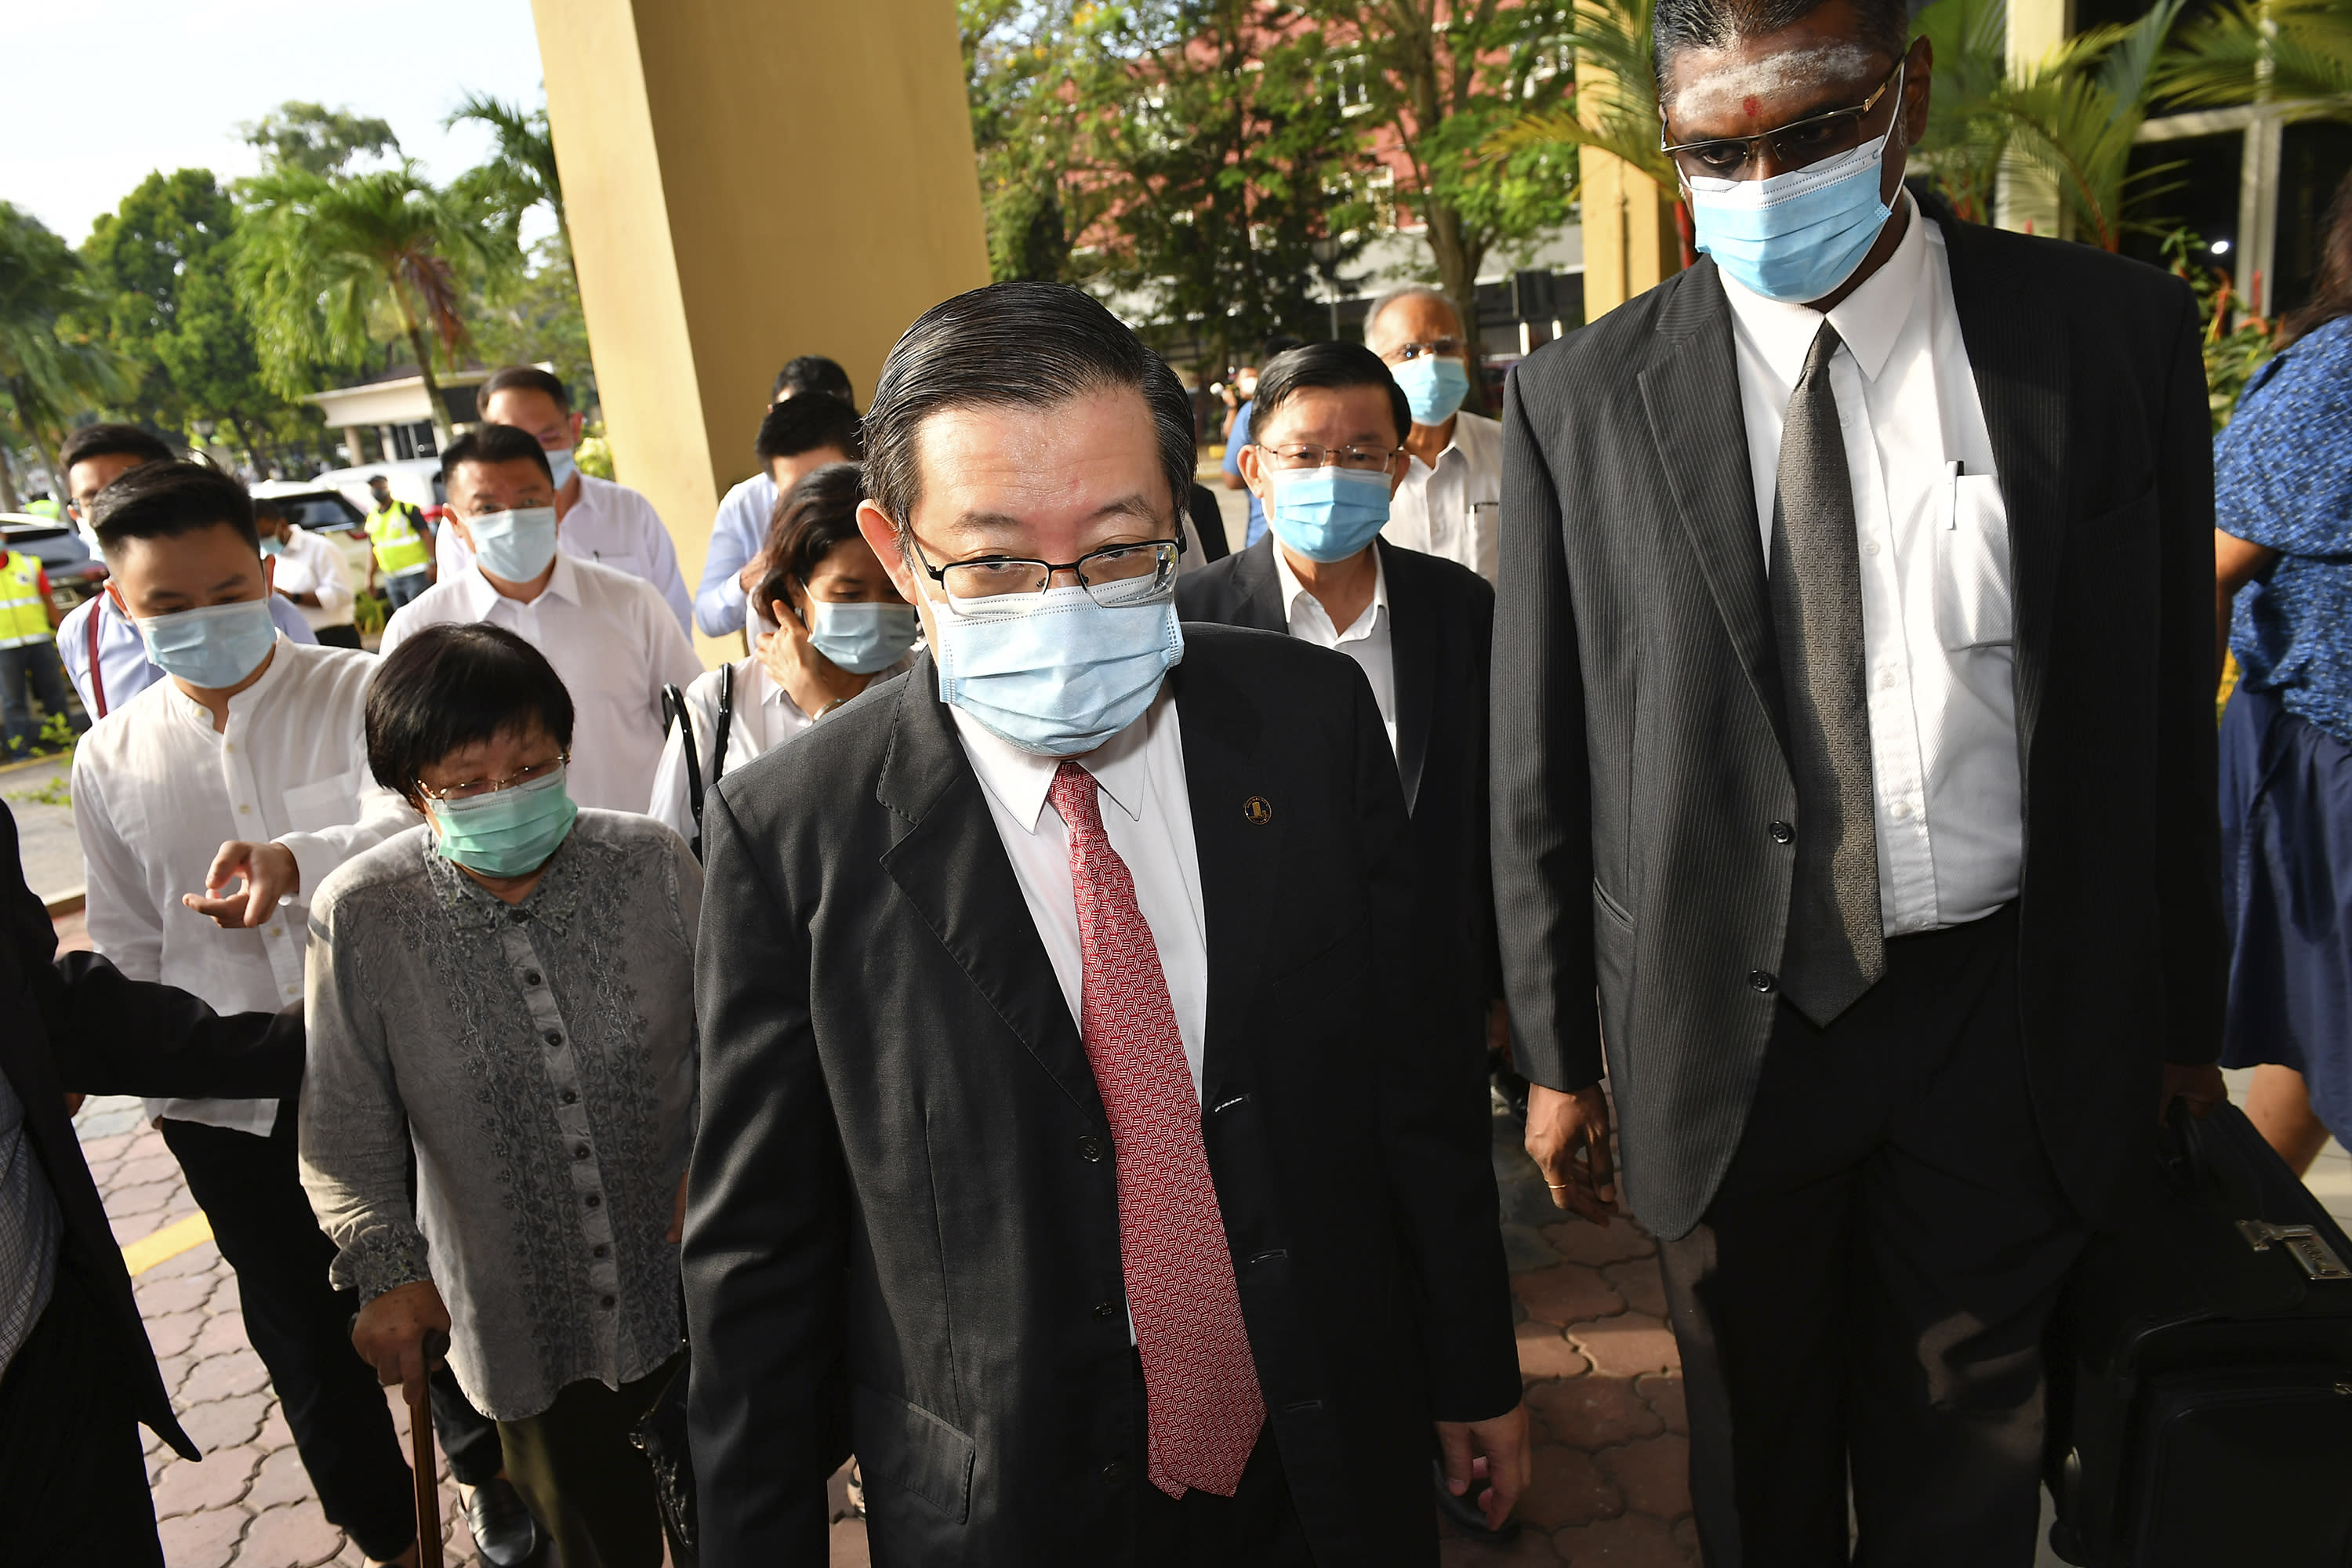 Malaysian former Finance Minister and Penang Chief Minister Lim Guan Eng, center, arrives at courthouse in Butterworth, Malaysia, Monday, Aug. 10, 2020. Lim pleaded not guilty to a second graft charge relating to a $1.5 billion undersea tunnel project. Lim has slammed the charges as political persecution by the new government. (AP Photo/Gary Chuah)